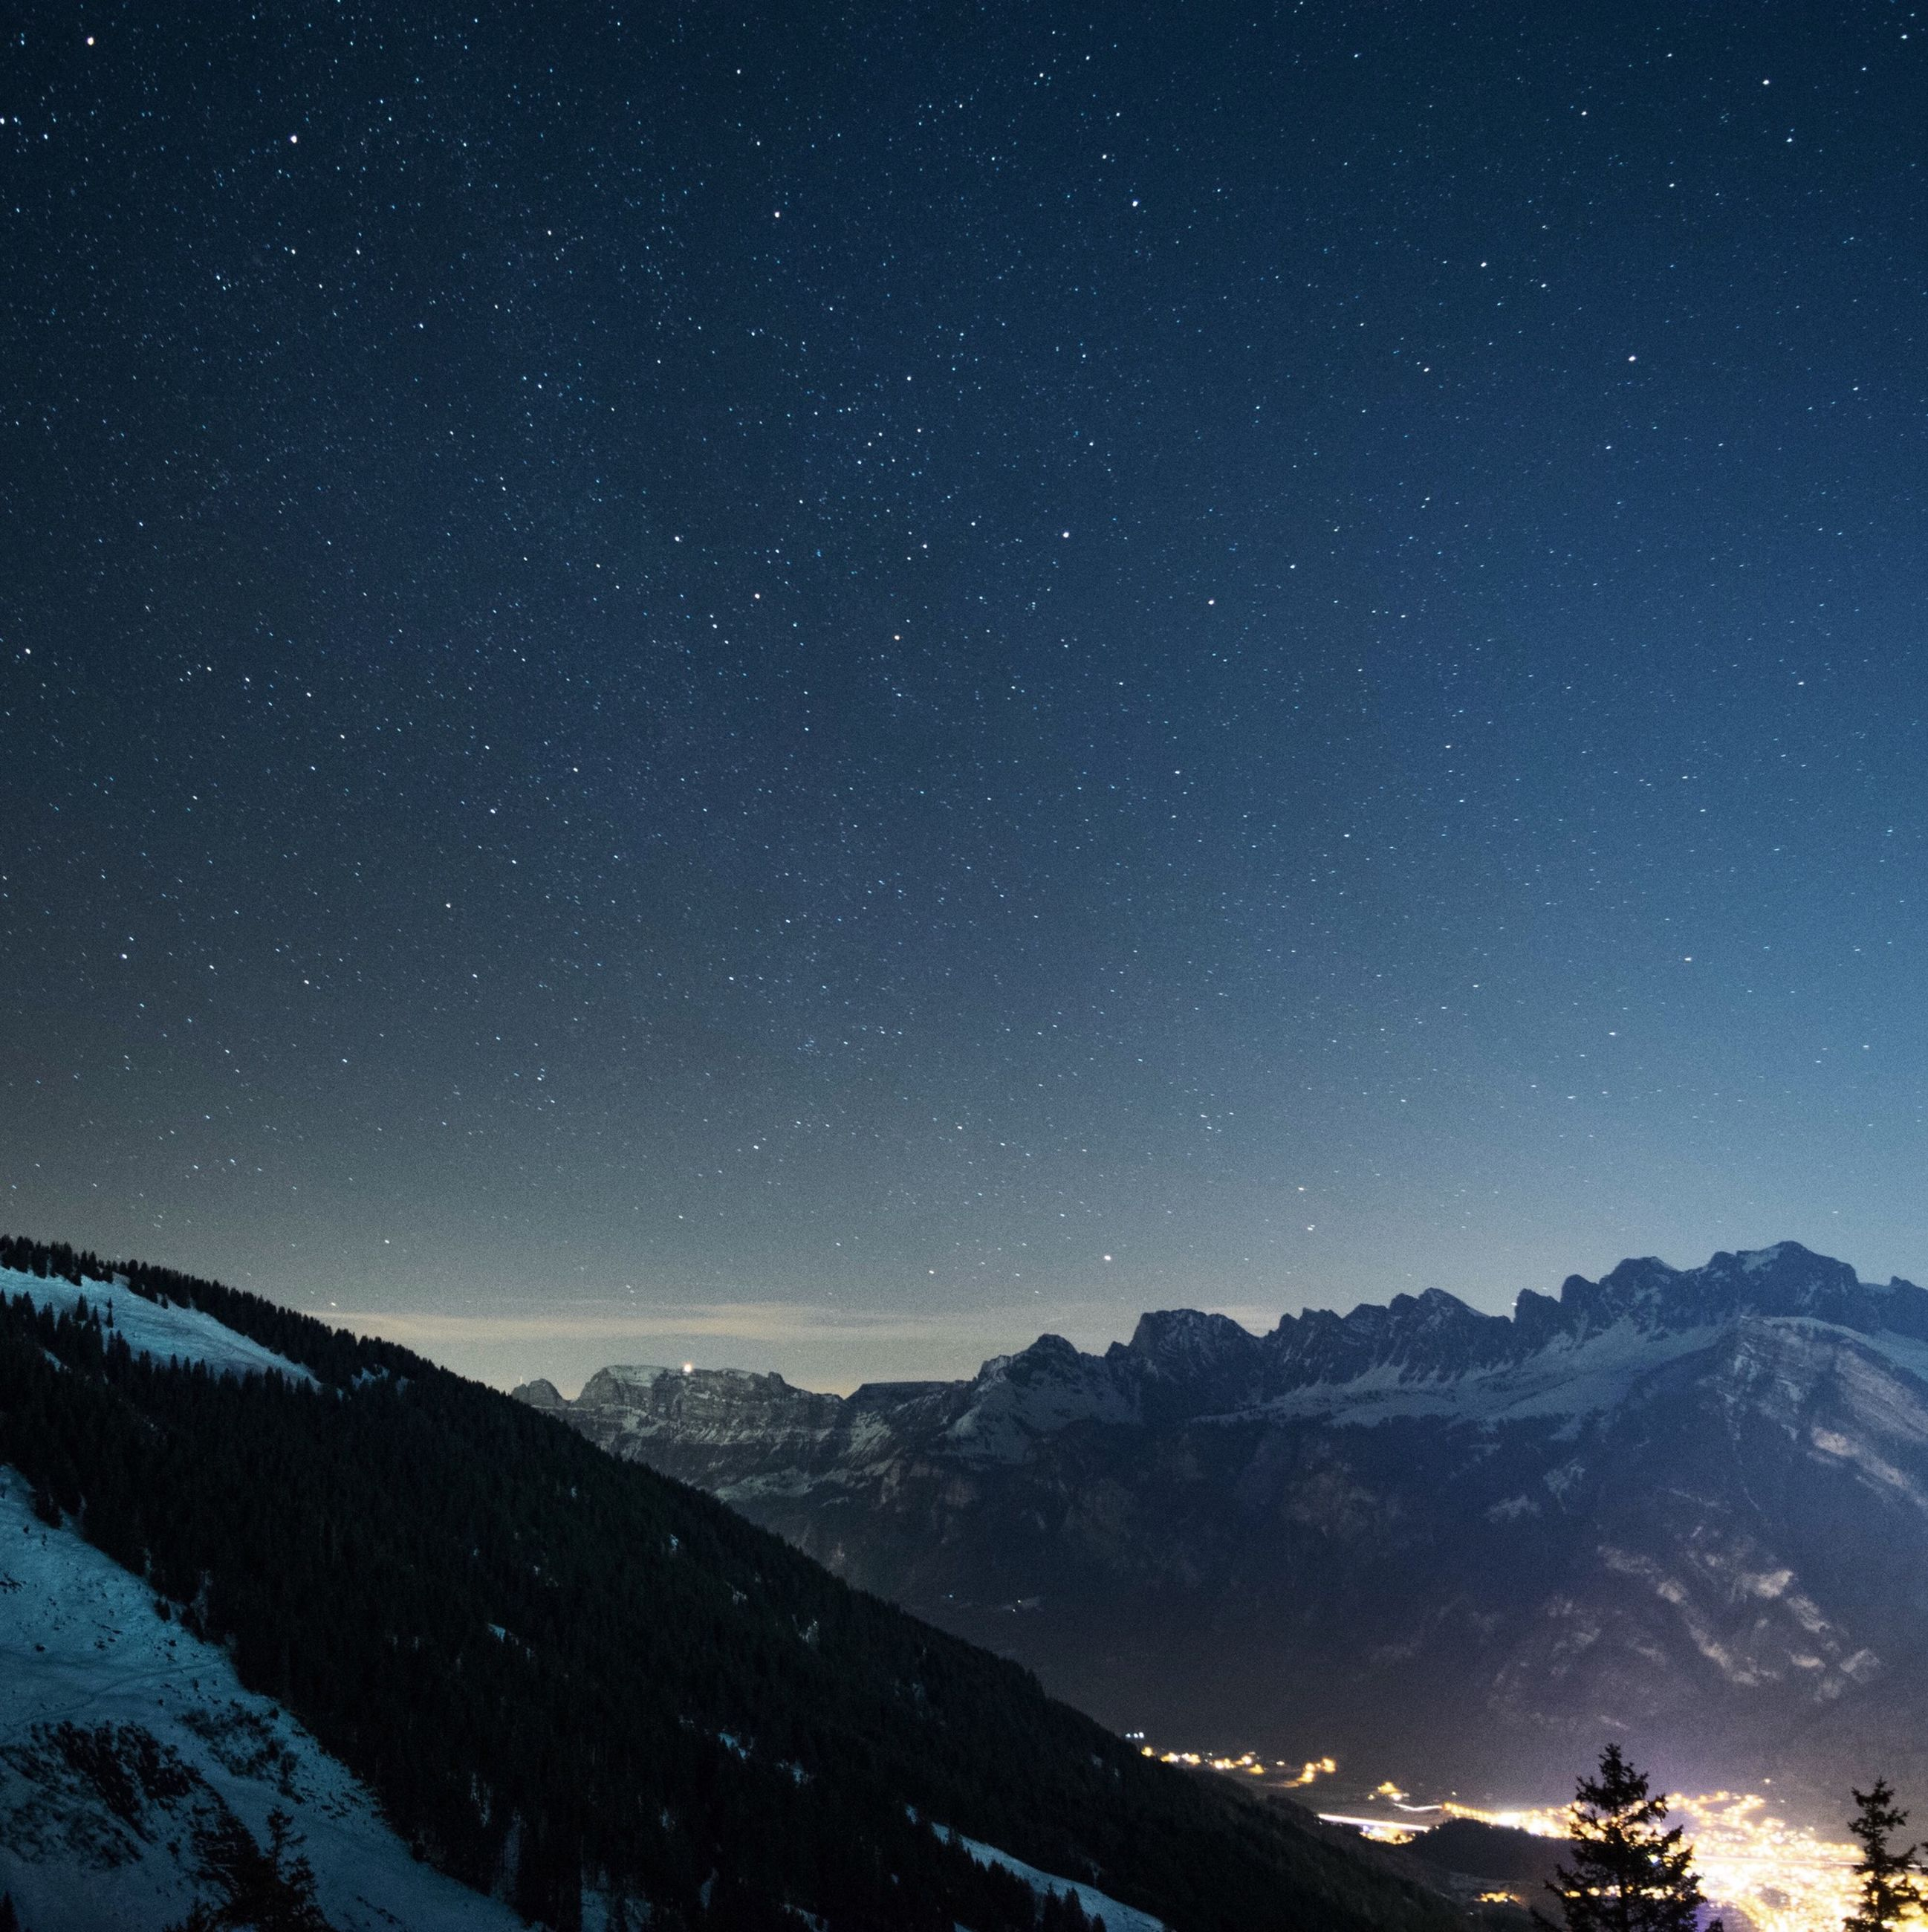 night, star - space, scenics, tranquil scene, star field, beauty in nature, tranquility, astronomy, mountain, snow, nature, galaxy, star, winter, landscape, sky, idyllic, space, cold temperature, mountain range